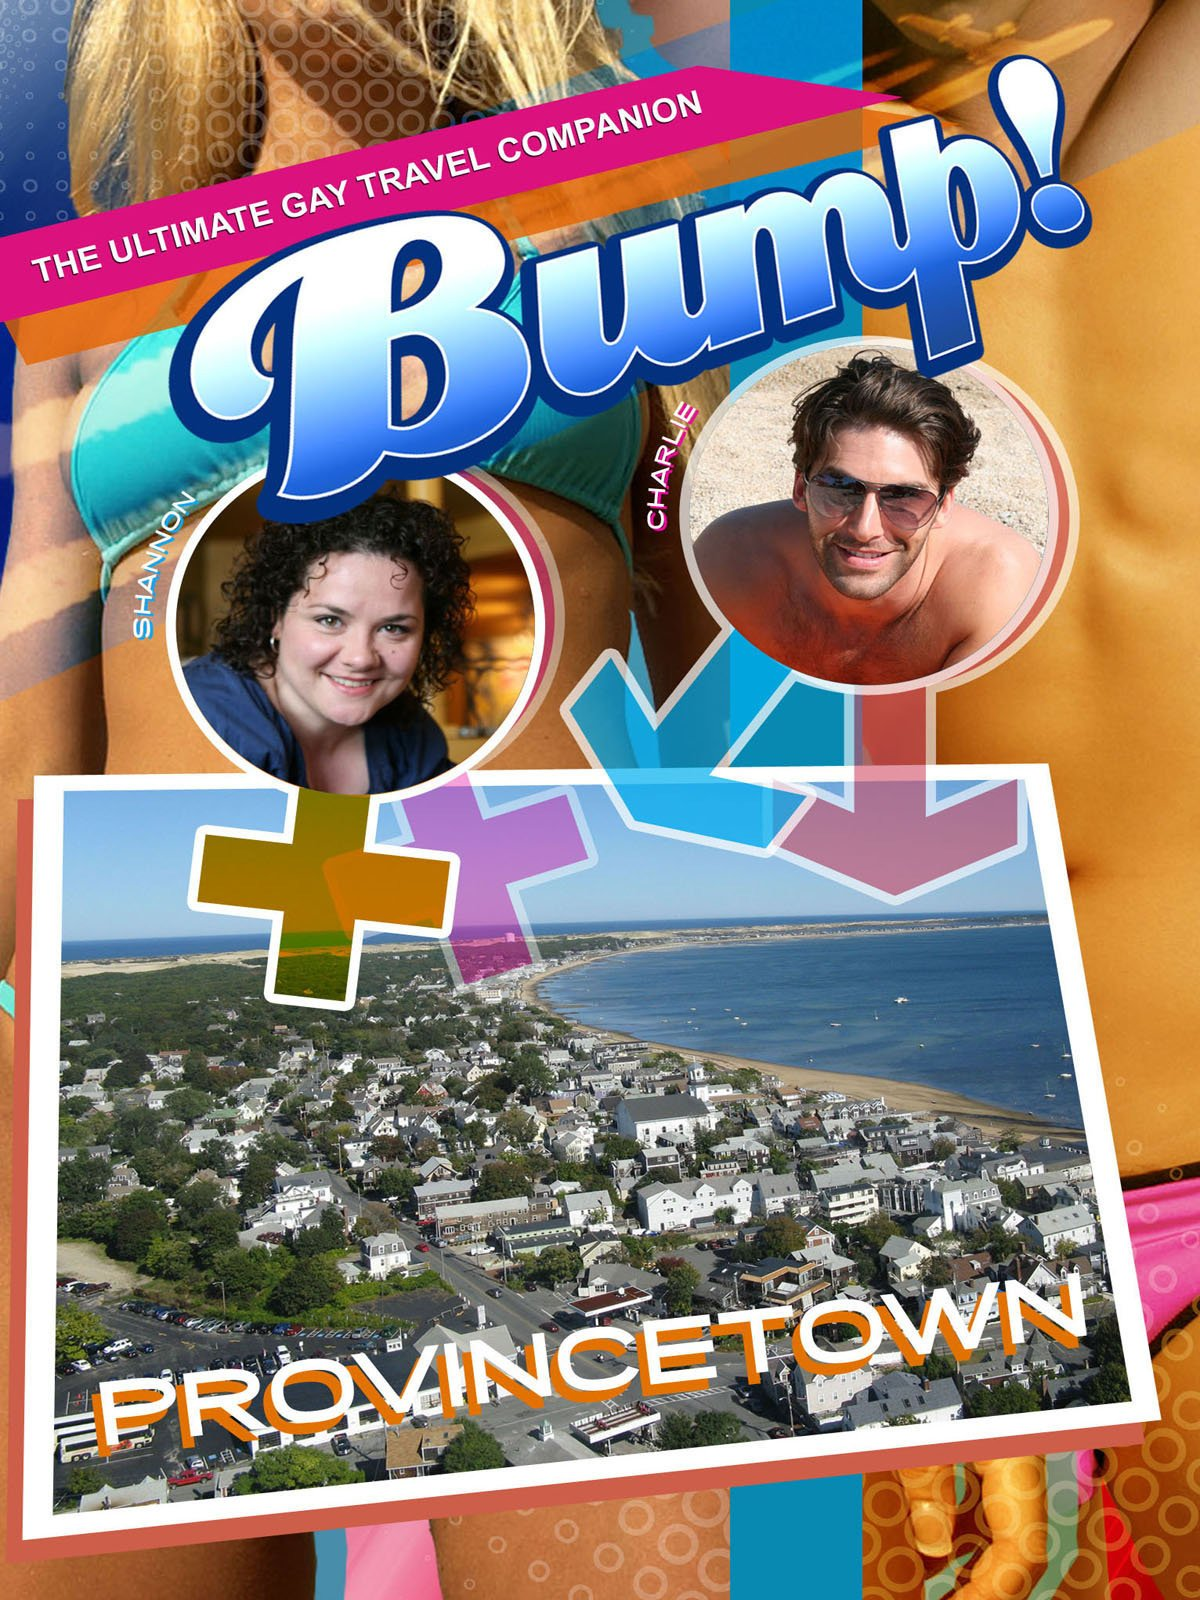 The Ultimate Gay Travel Companion - Provincetown | Prime Video